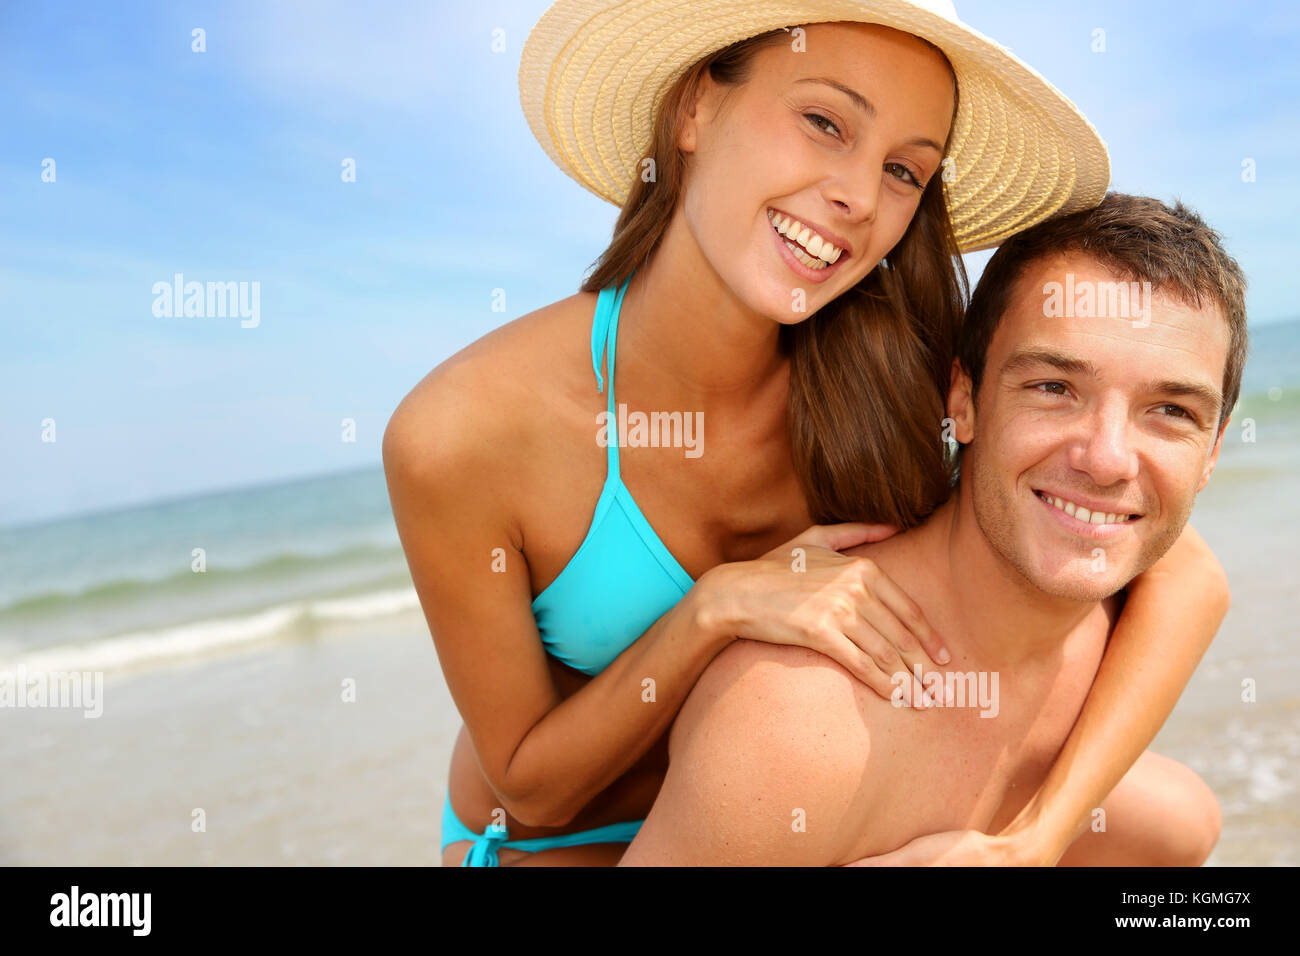 Man giving piggyback ride to girlfriend by the ocean - Stock Image